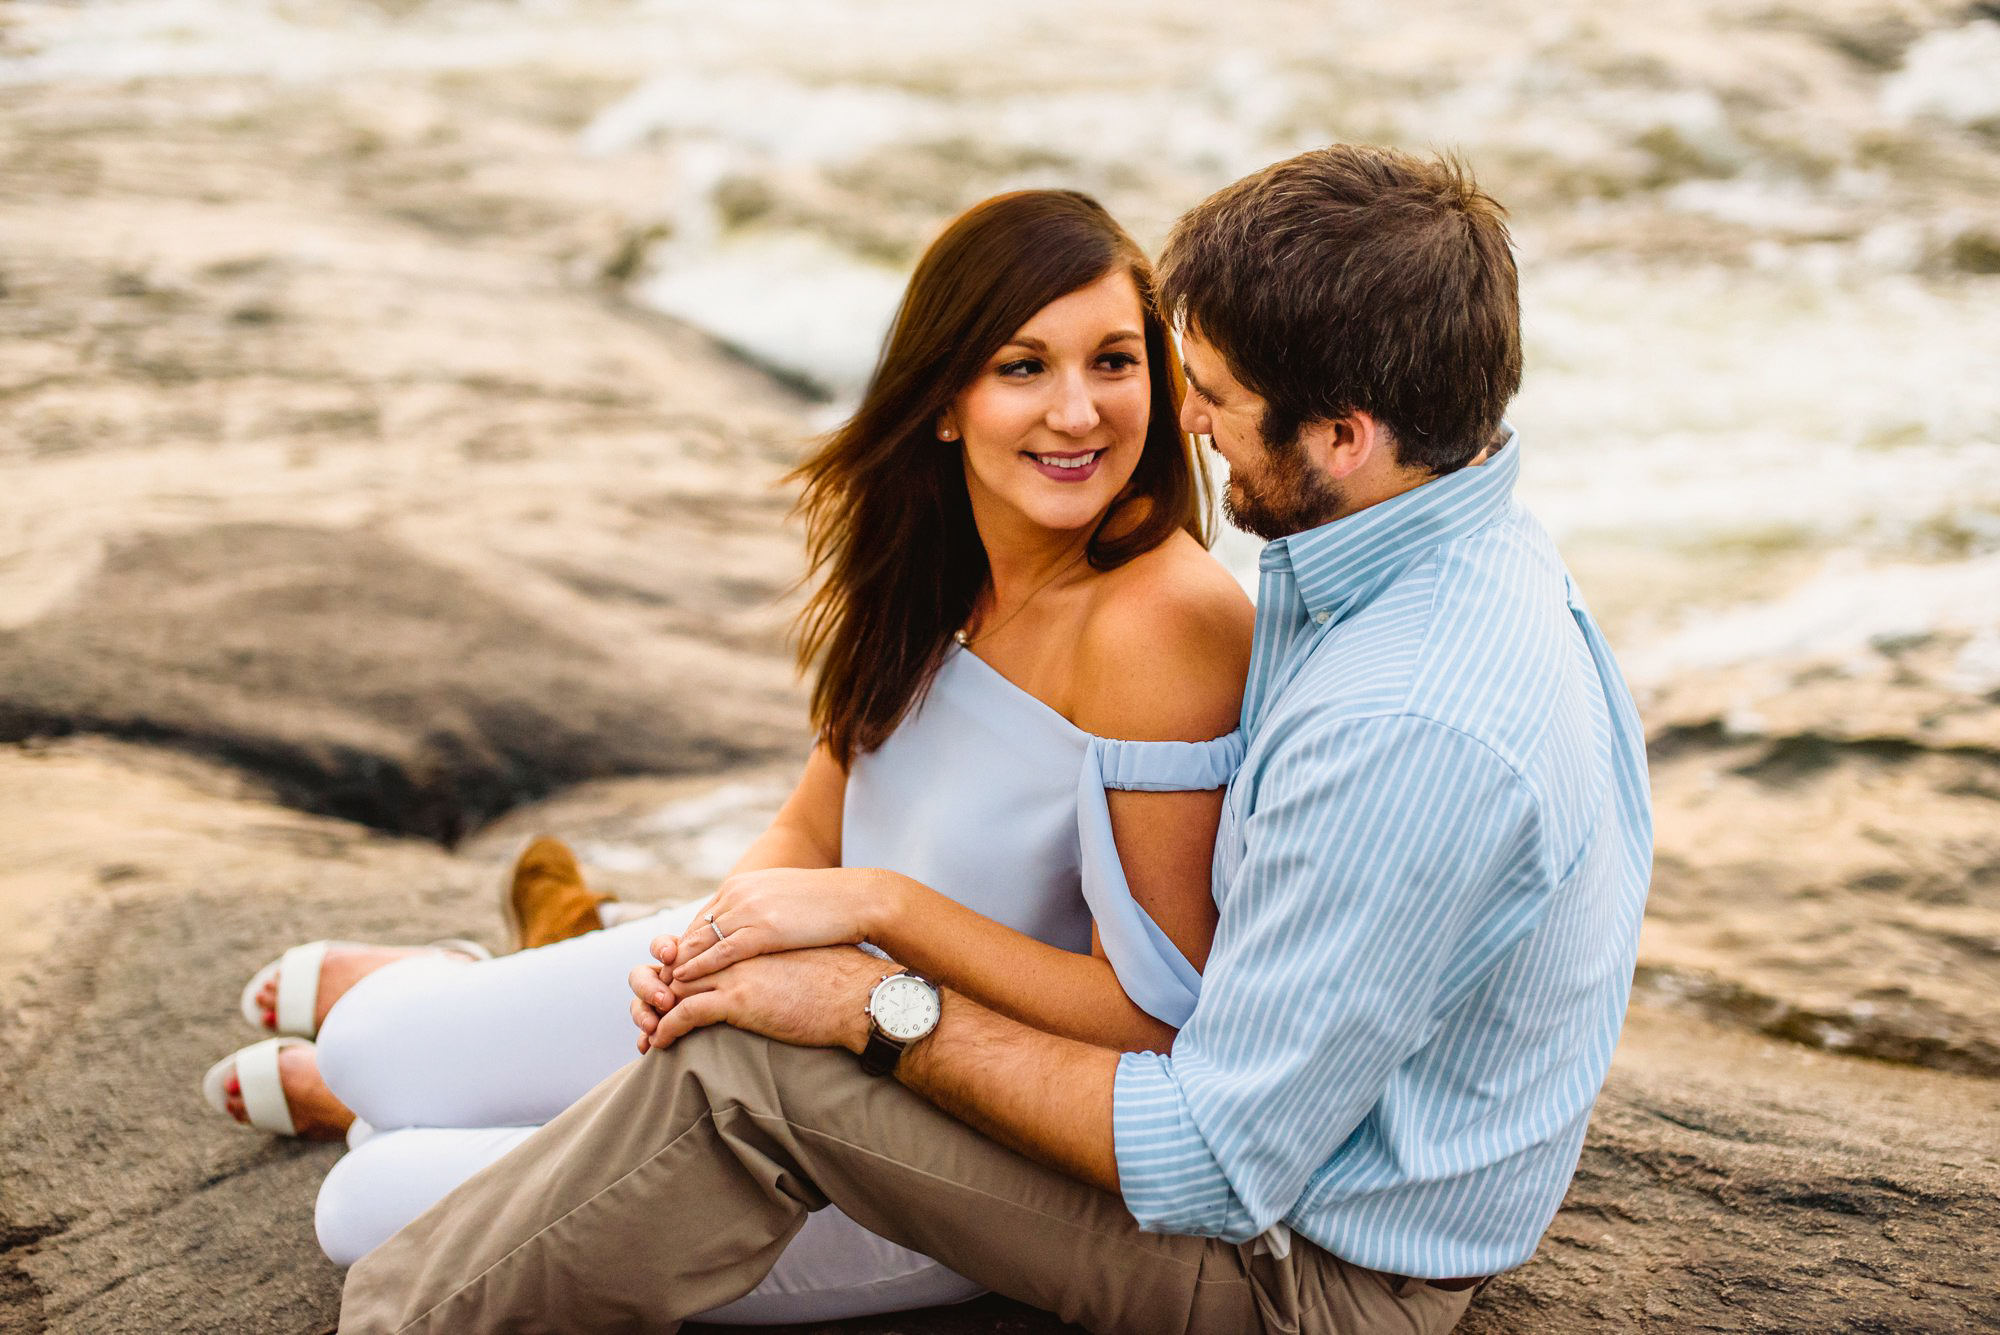 engagement-photography-88-love-stories-9.jpg